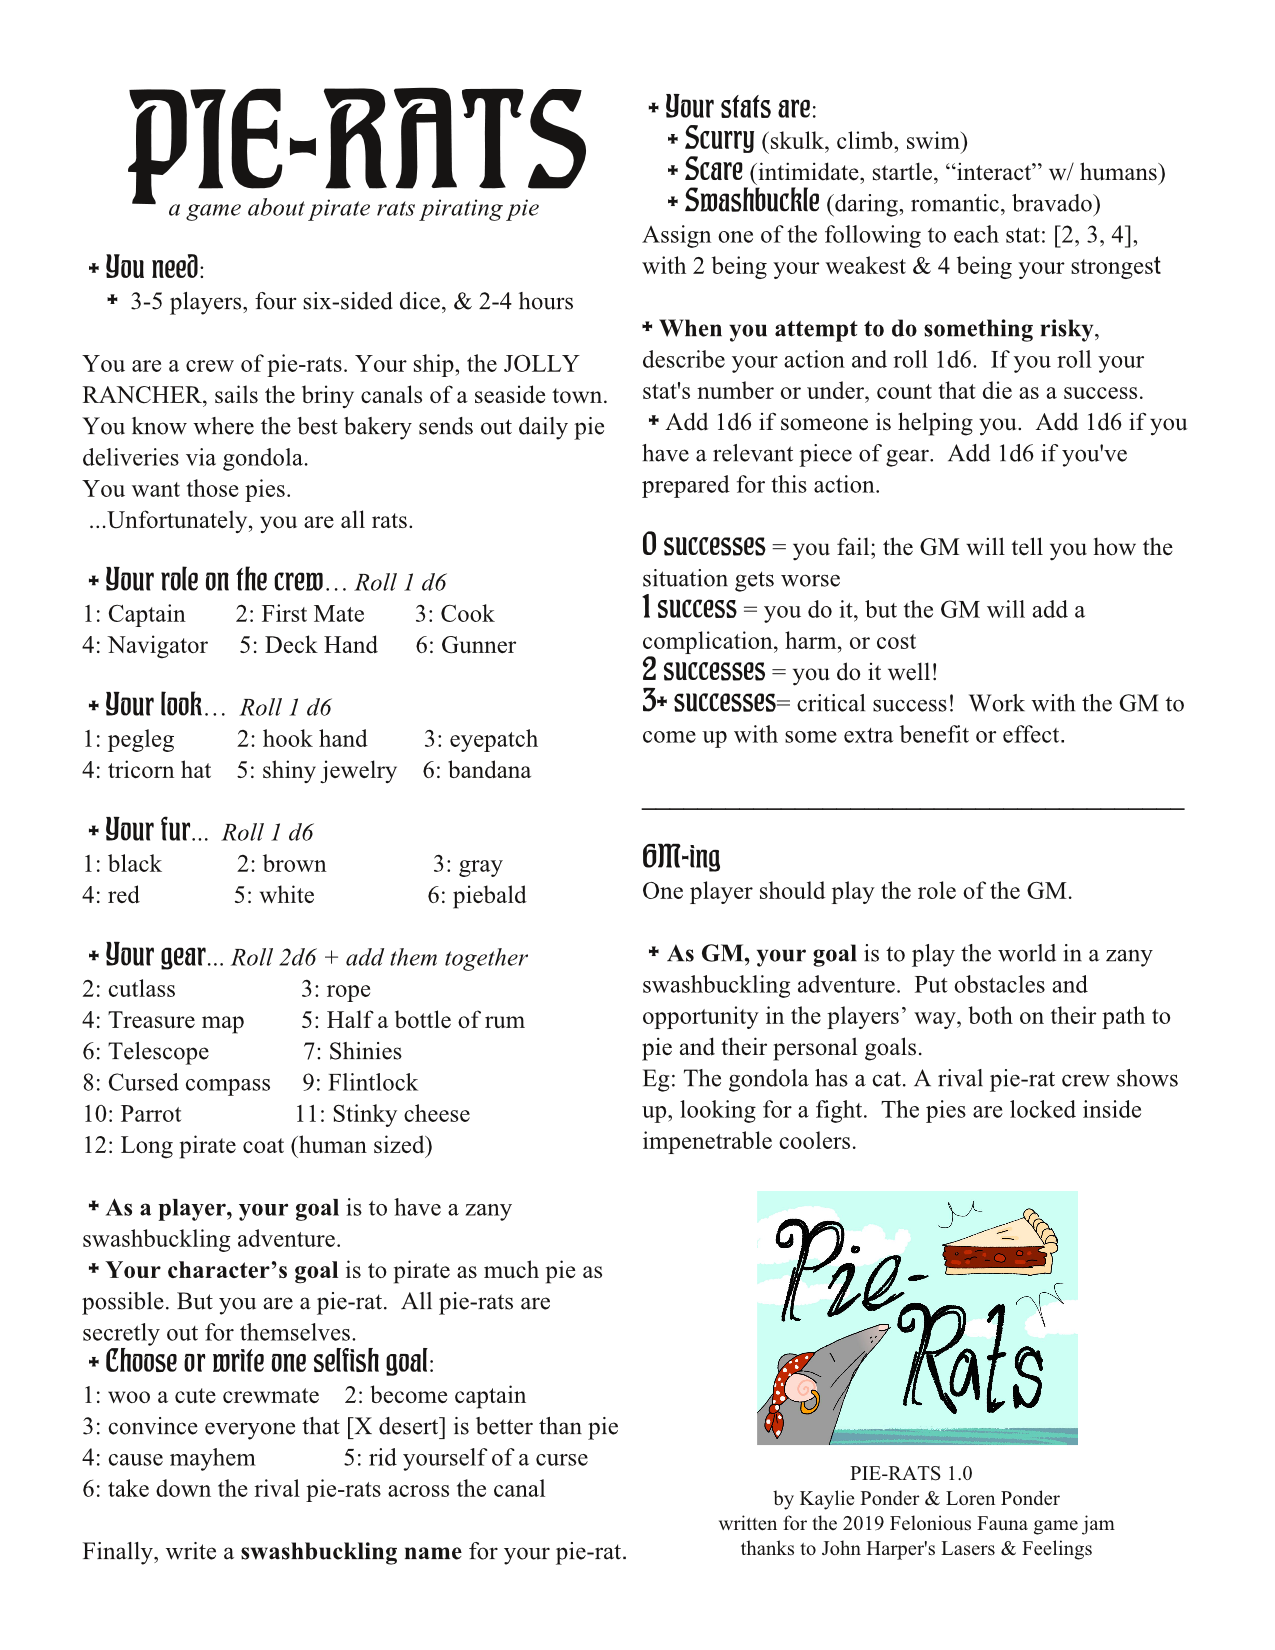 PIE-RATS by Ponder Games for Felonious Fauna 2k19! - itch io